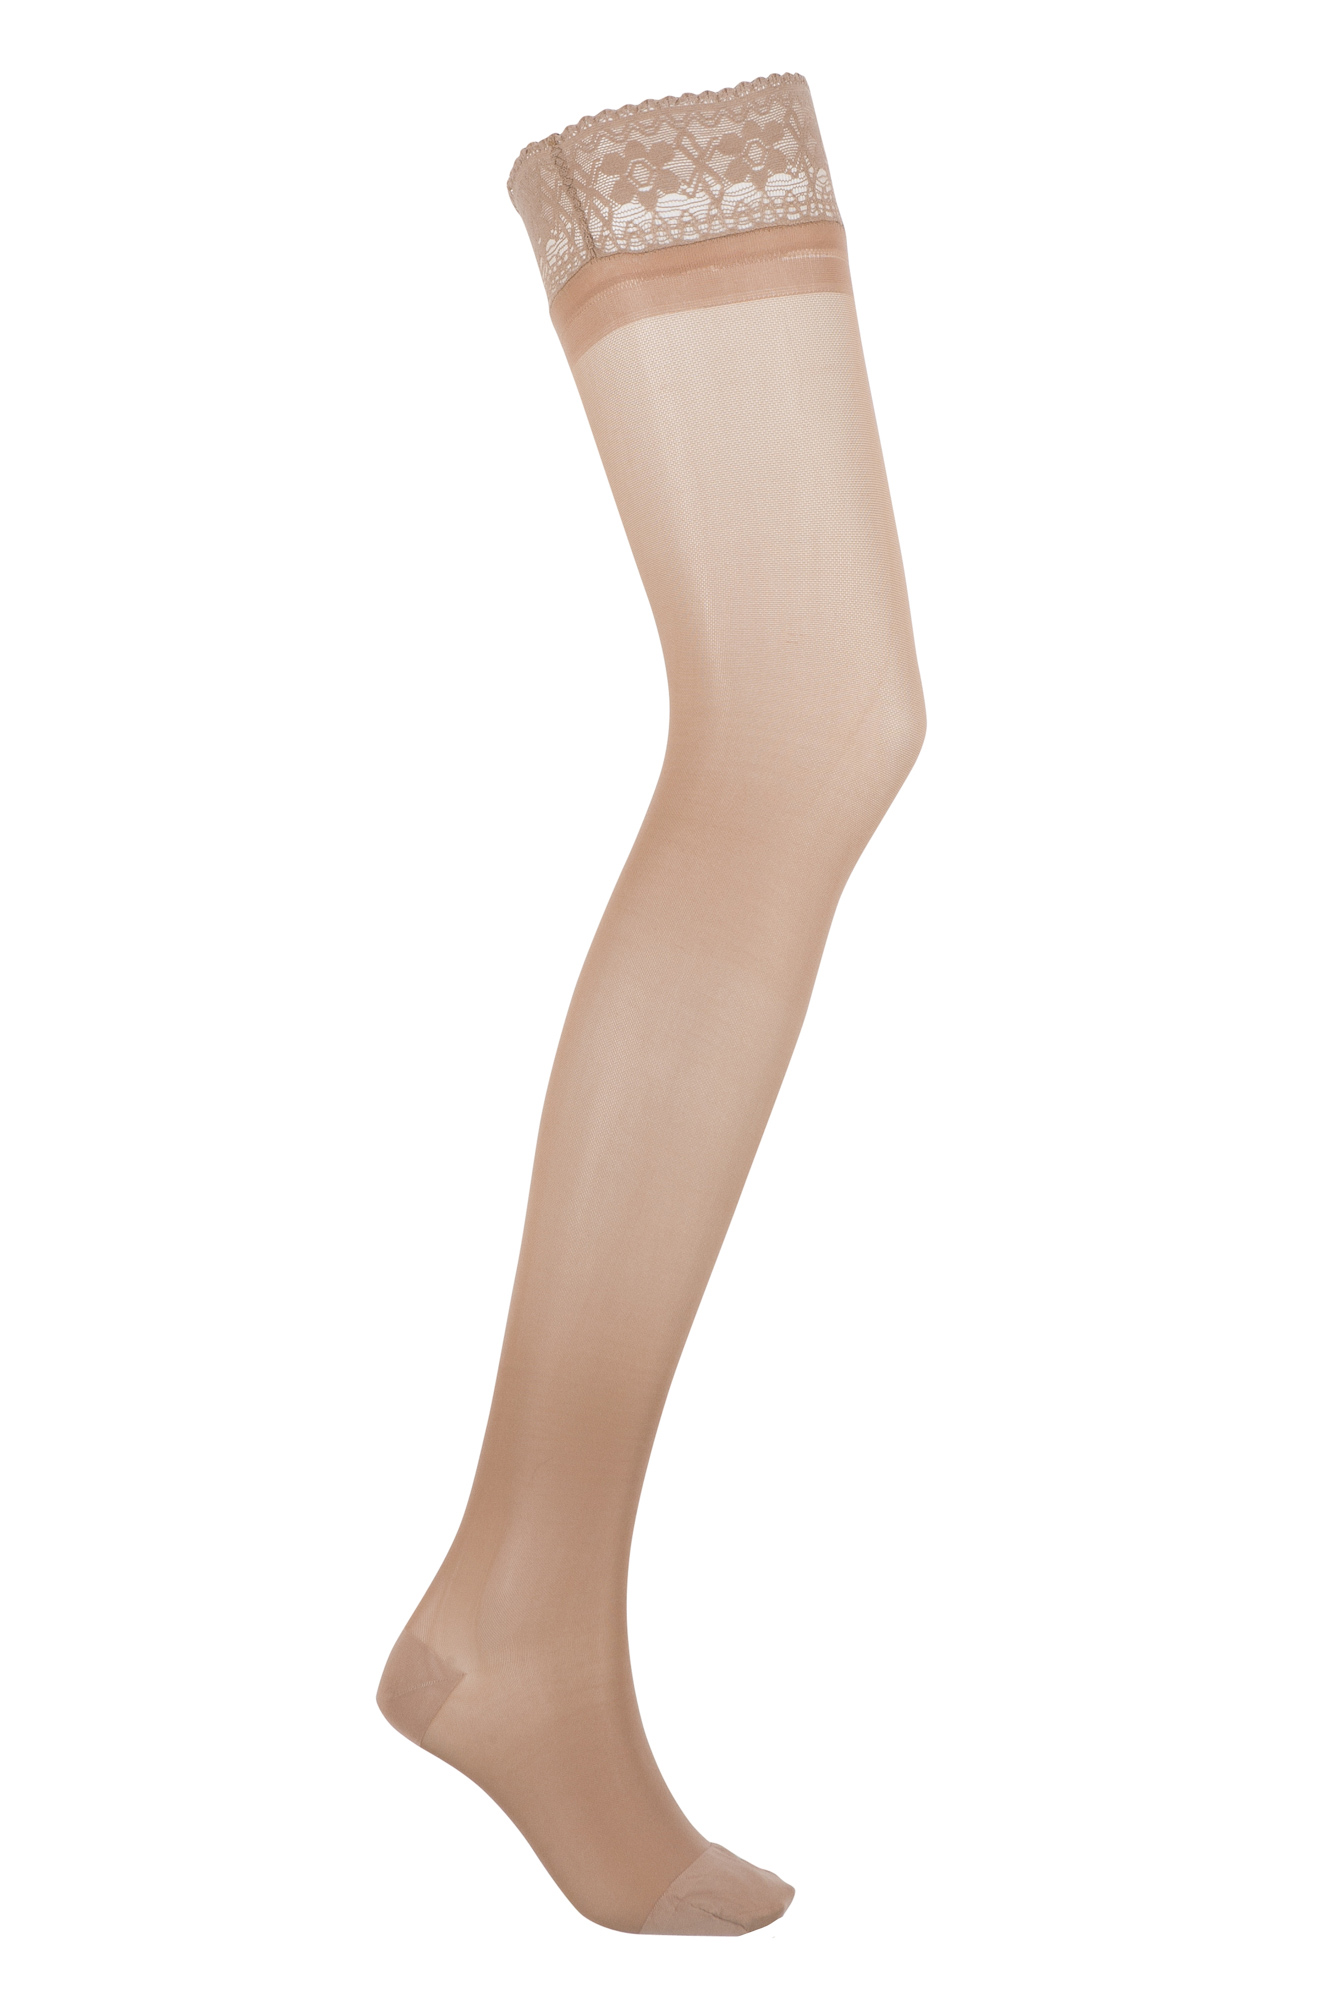 SCHOLL® Softgrip Ultima Class 1 Thigh Hold Up Support Stockings